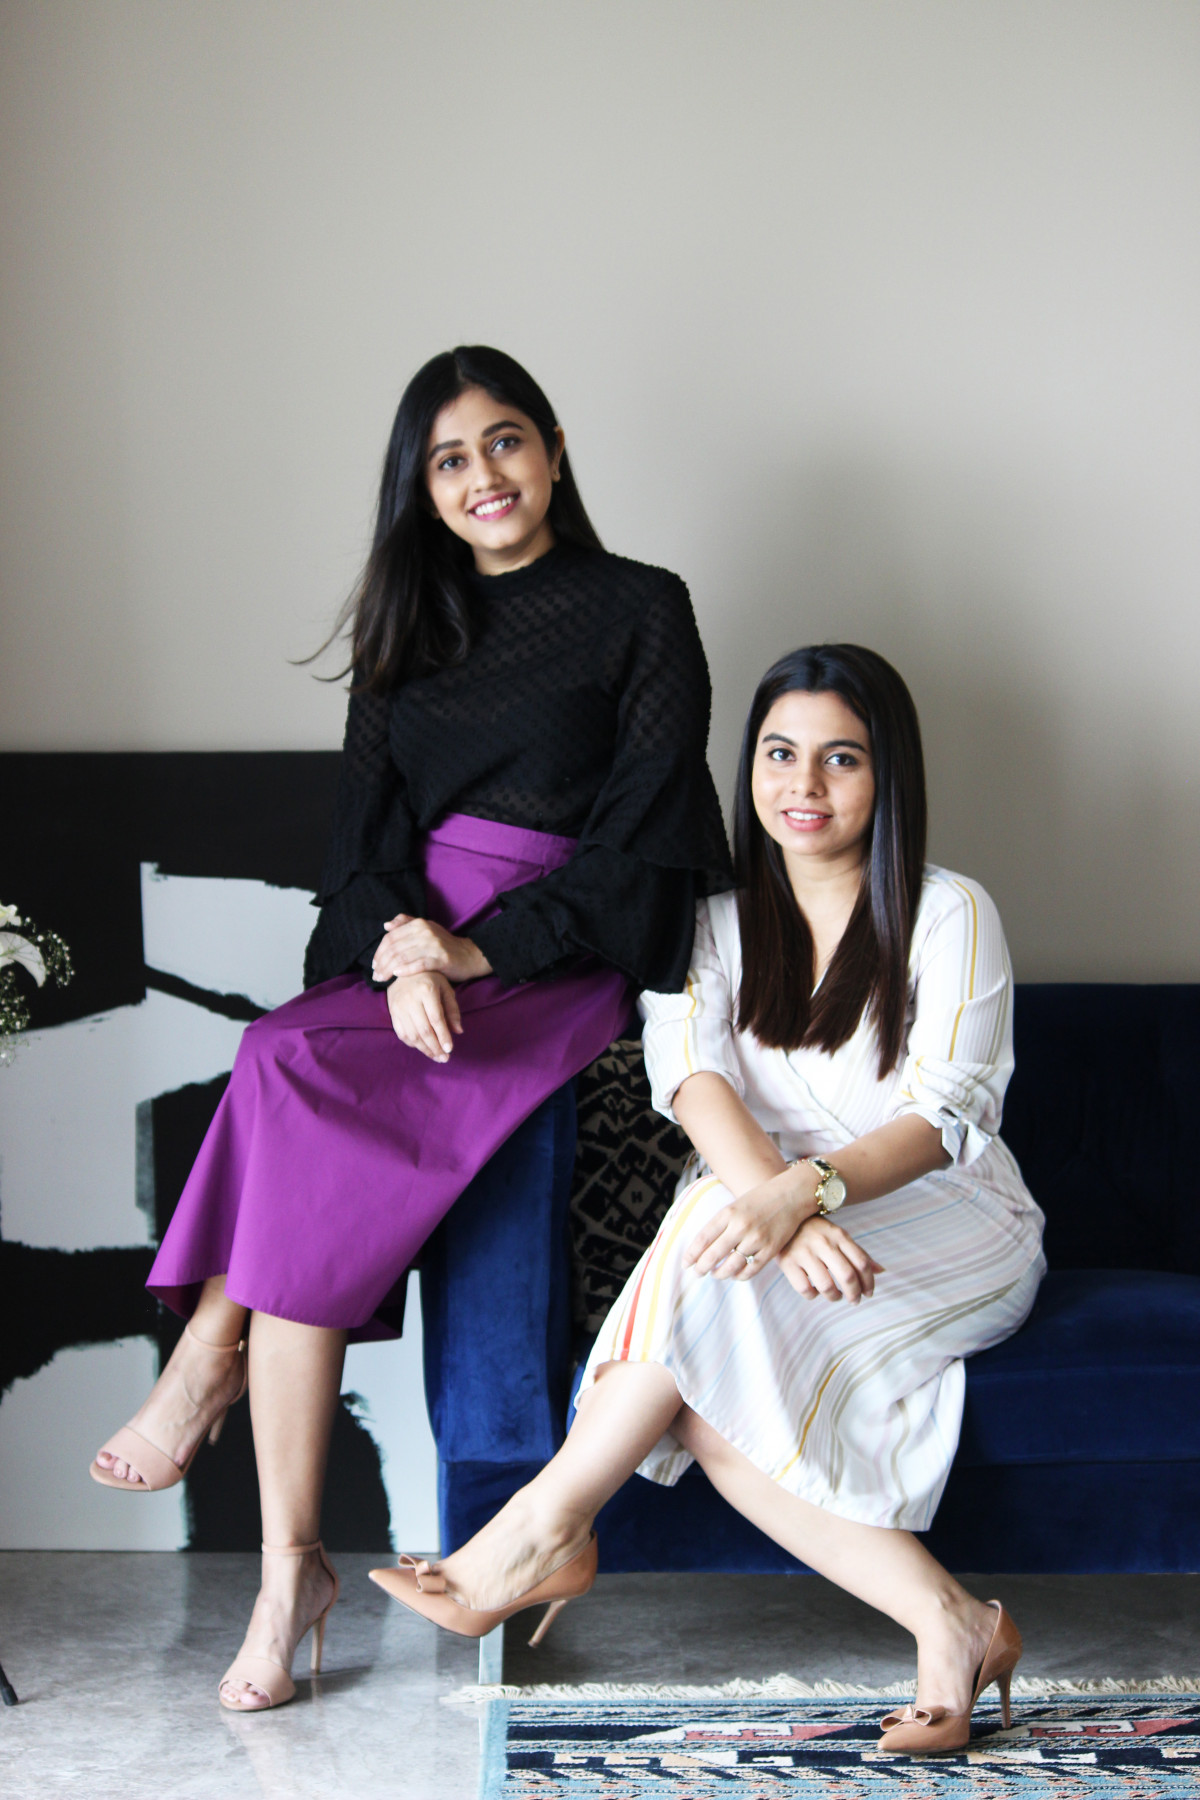 Disha Bhavsar and Shivani Ajmera, Principal Designers and Co-Founders, Quirk Studio